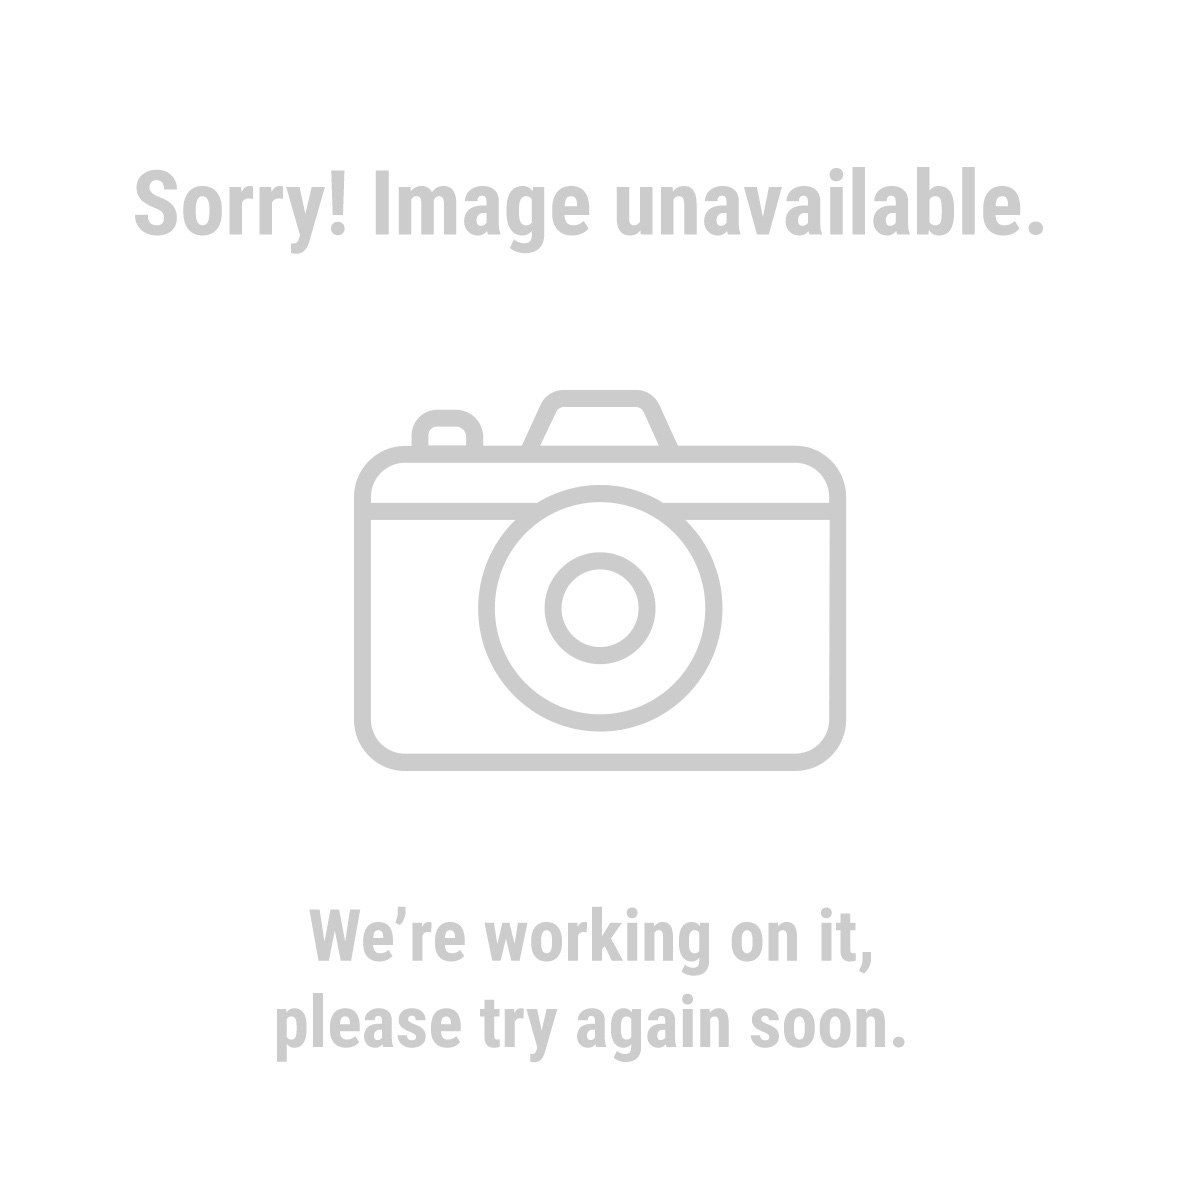 Storehouse® 63035 30 In. x 16 In. Two Shelf Polypropylene Industrial Service Cart